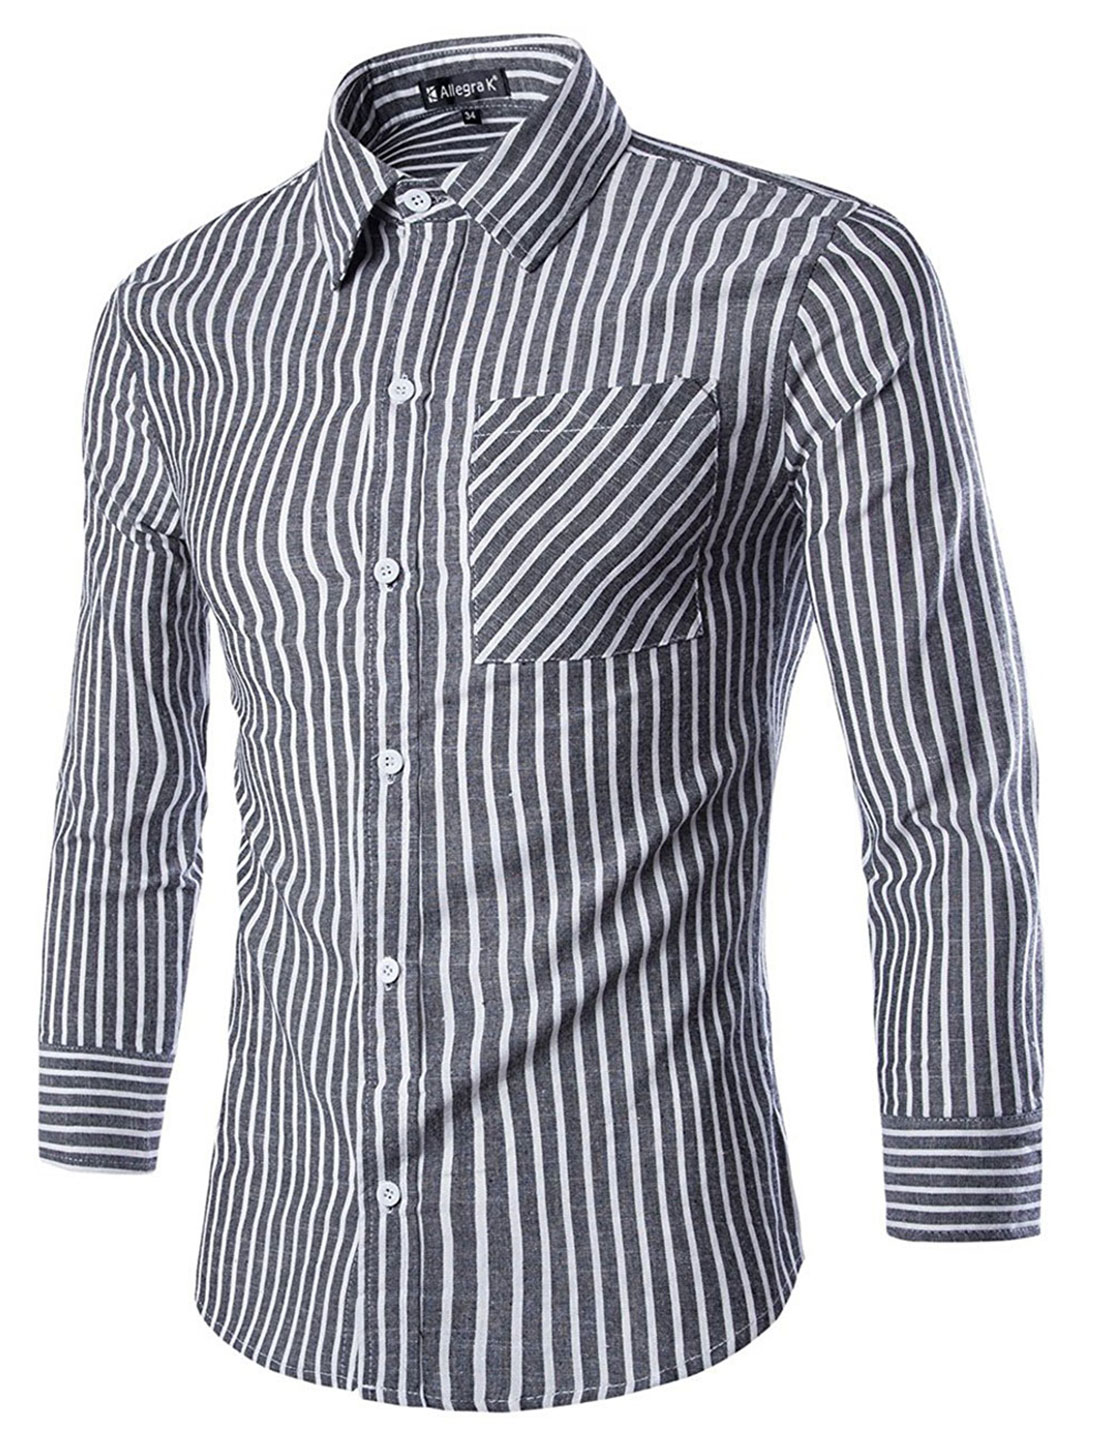 Men Basic Collar Striped Button Down Shirts Gray White M